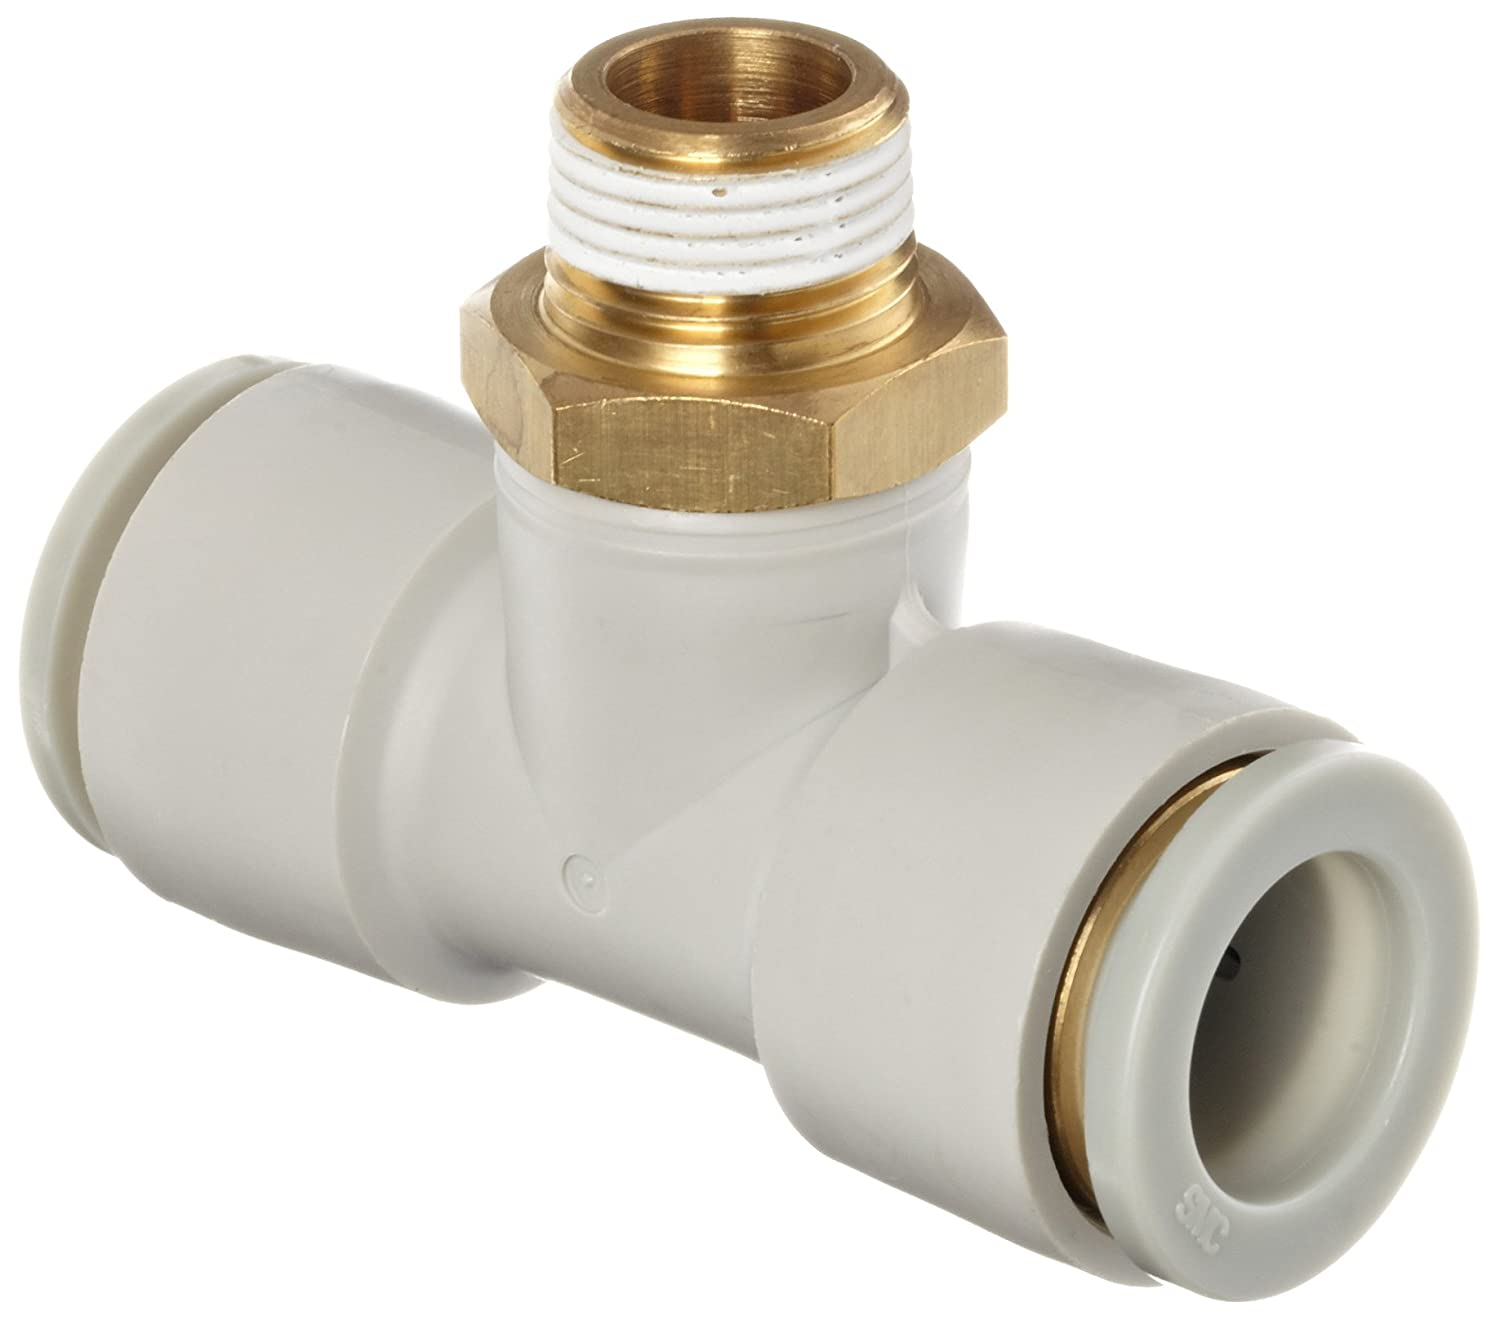 SMC KQ2T06-01AS PBT /& Brass Push-to-Connect Tube Fitting with Sealant Branch Tee 6 mm Tube OD x 1//8 BSPT Male